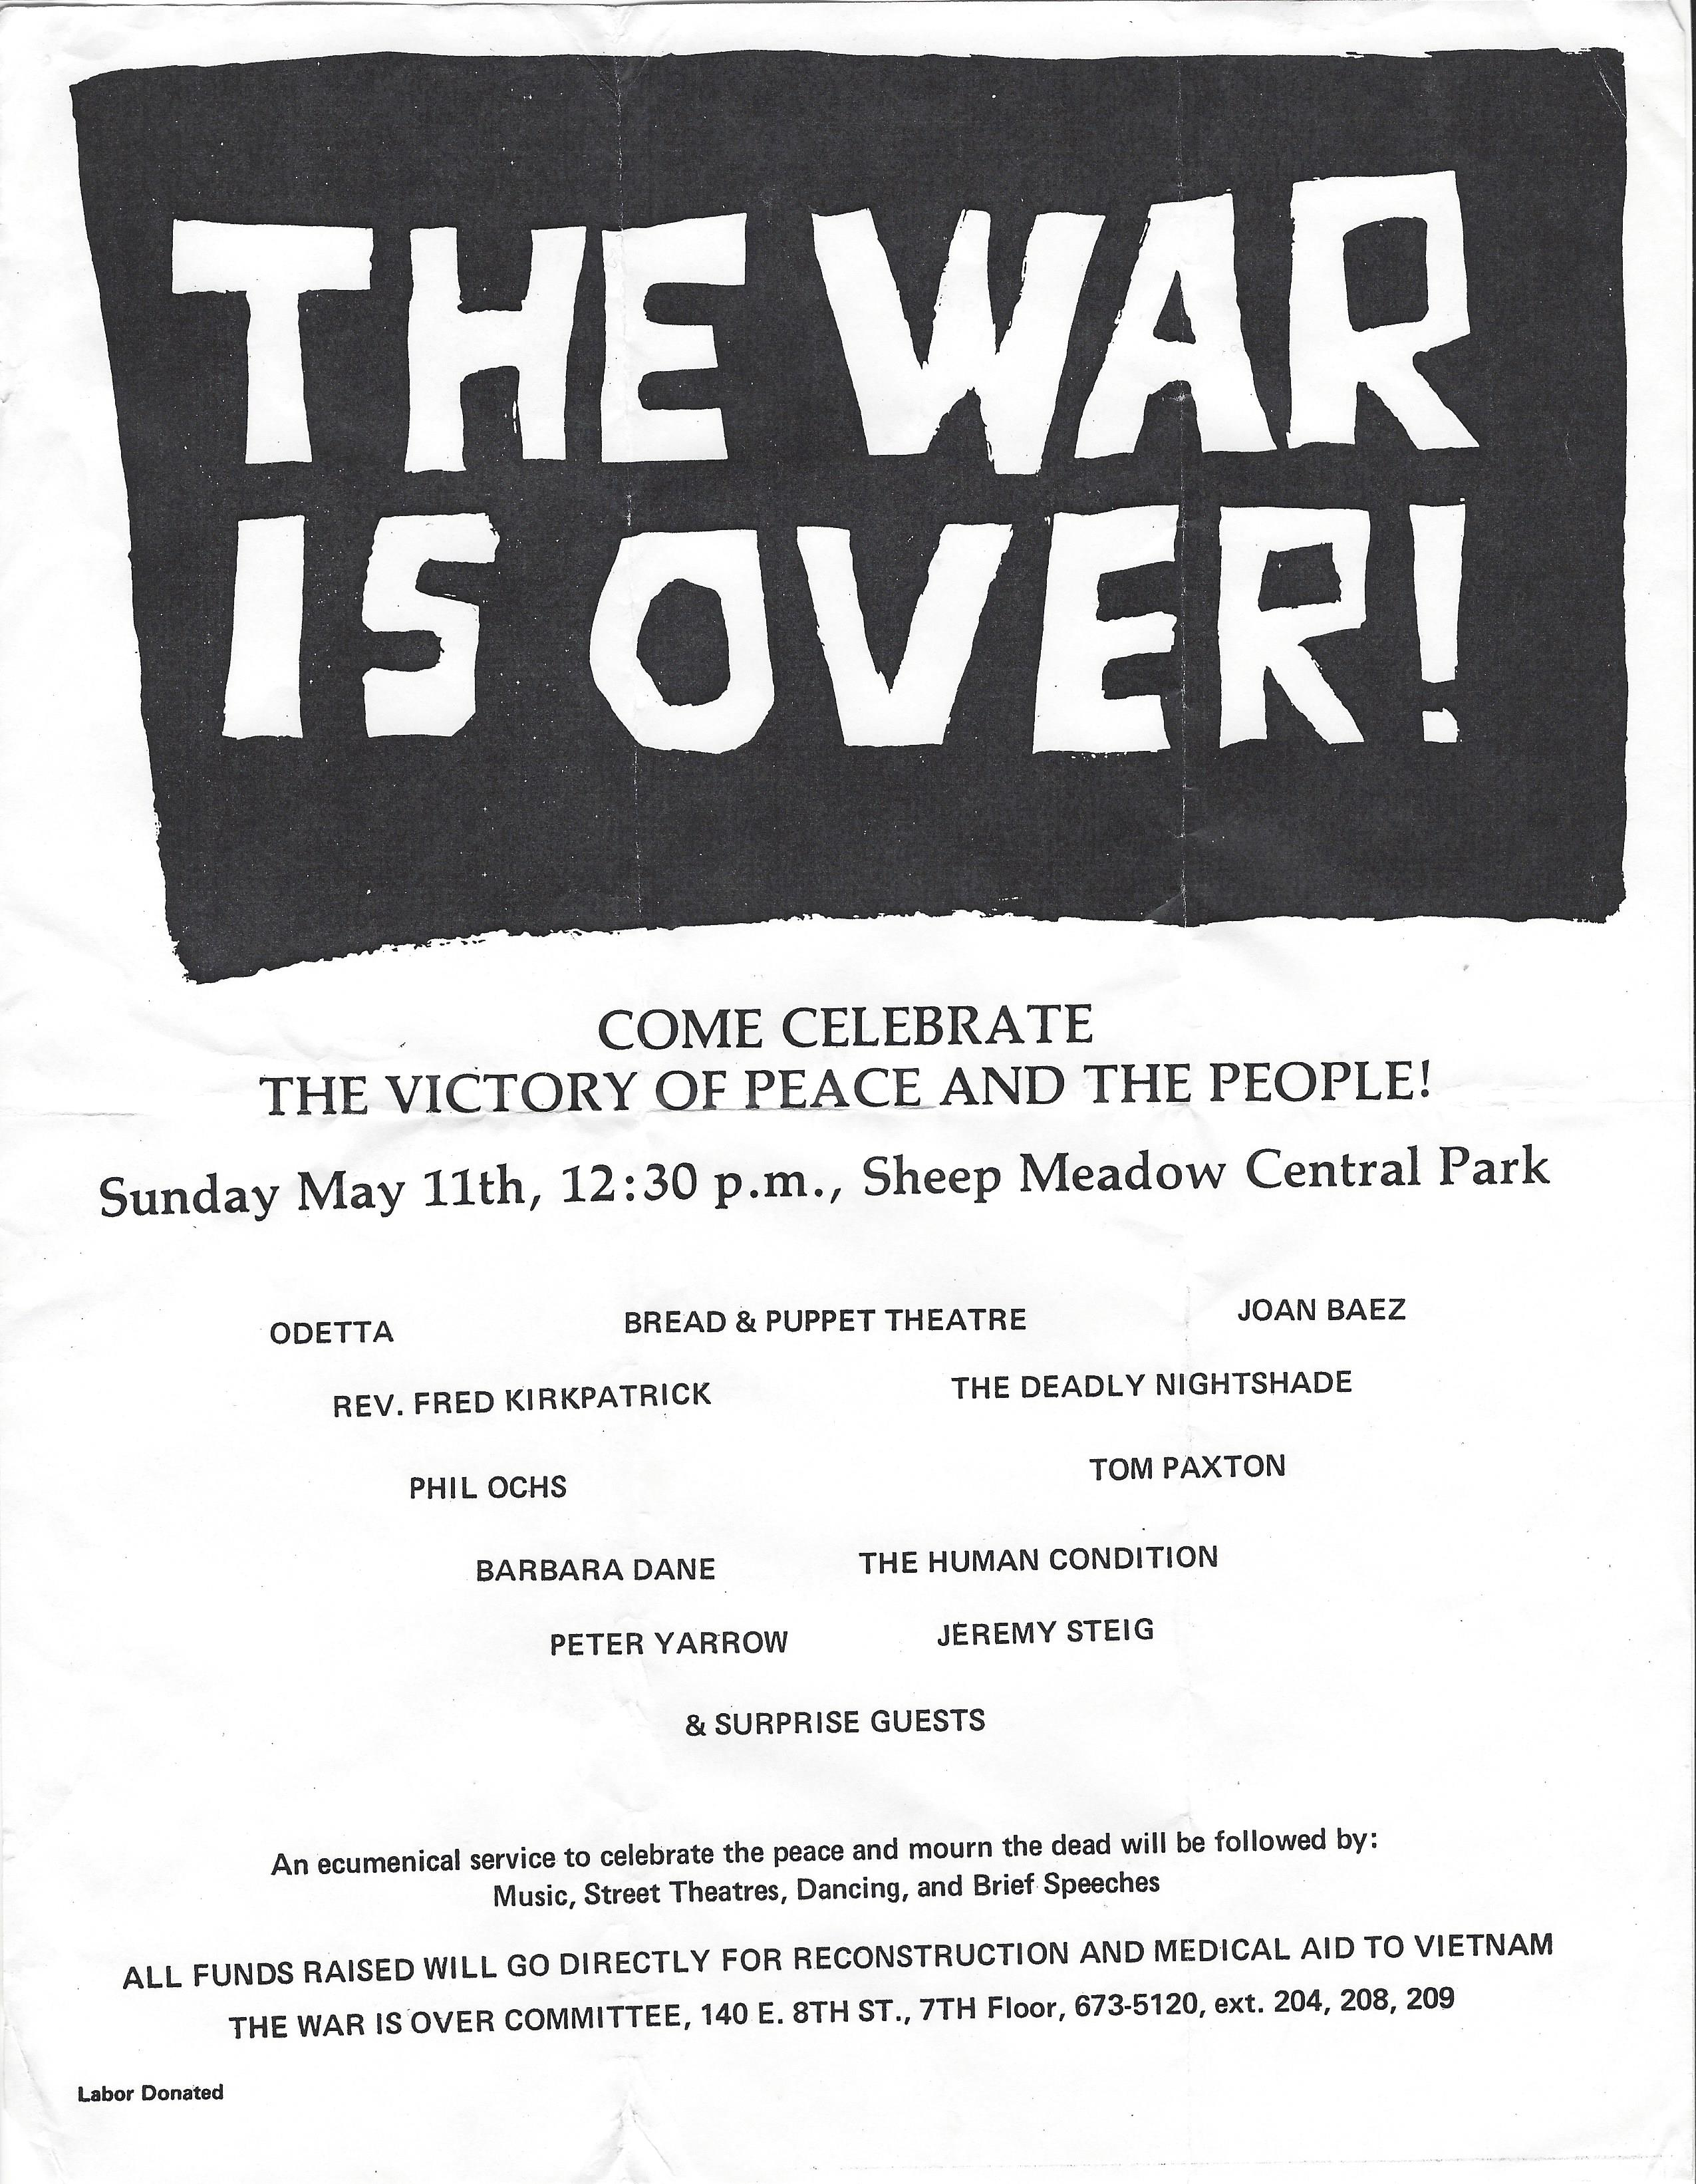 The War Is Over leaflet